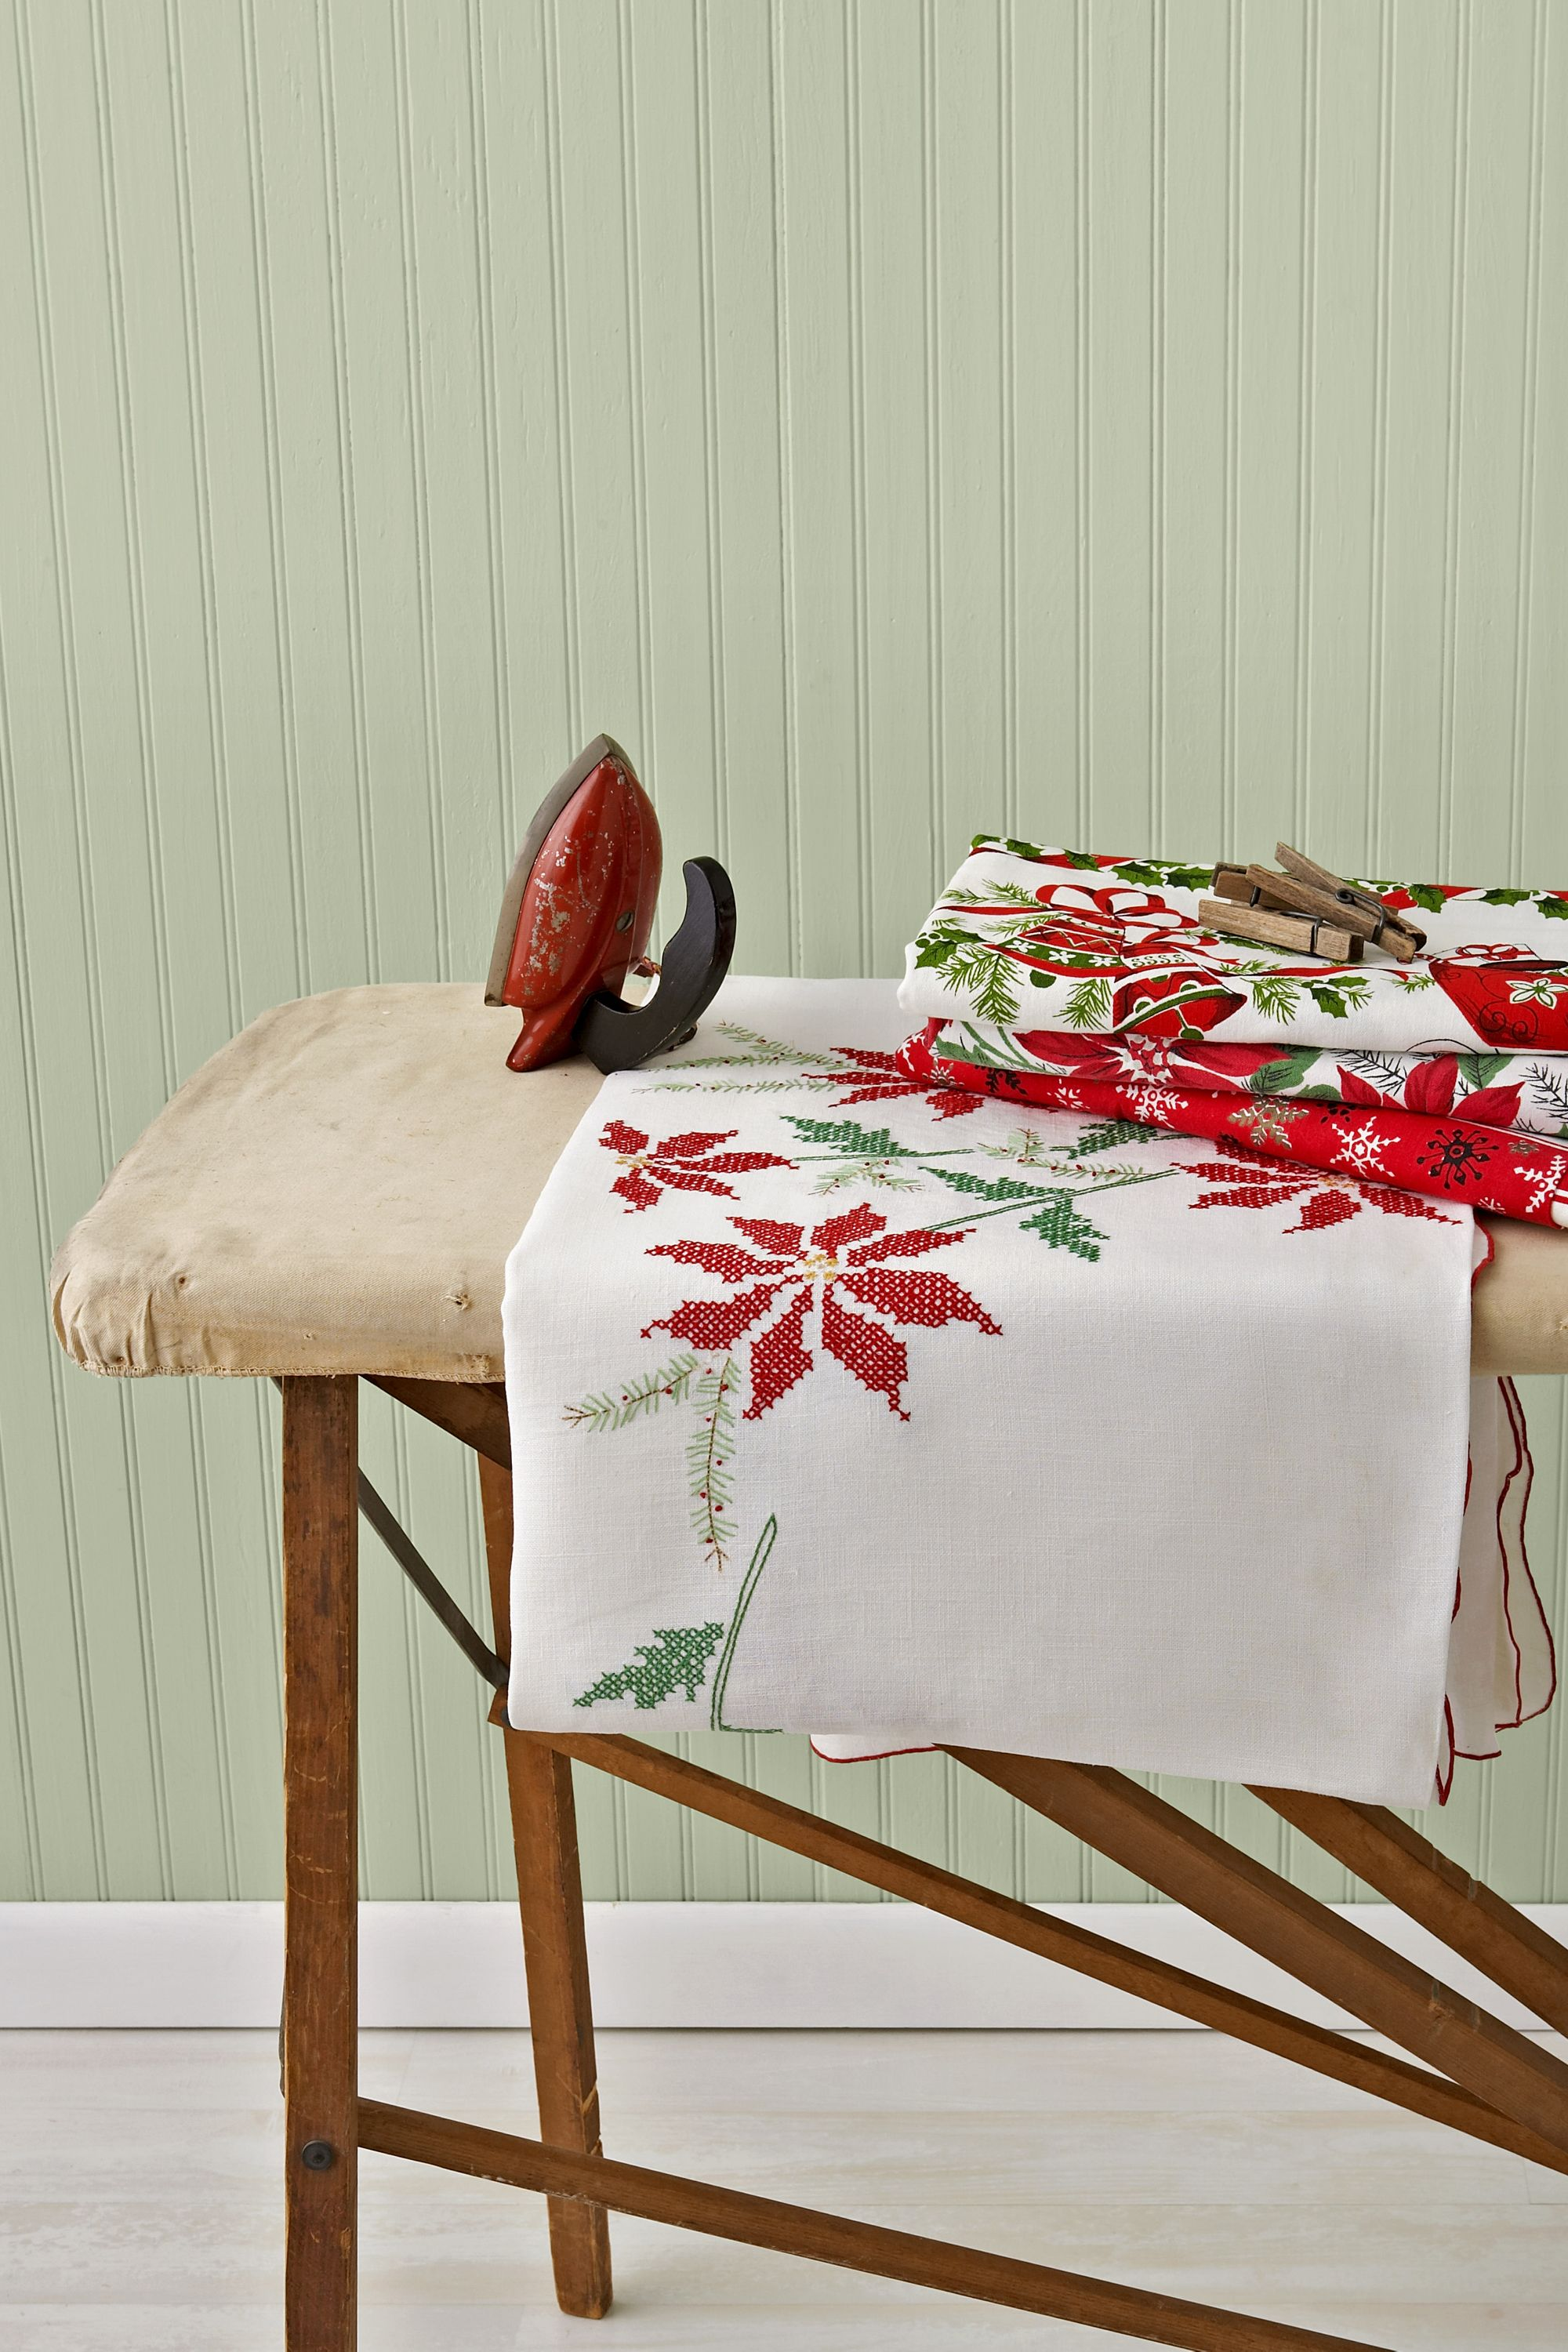 Christmas Tablecloths Australia Vintage Christmas Tablecloths And Linens Collecting Vintage